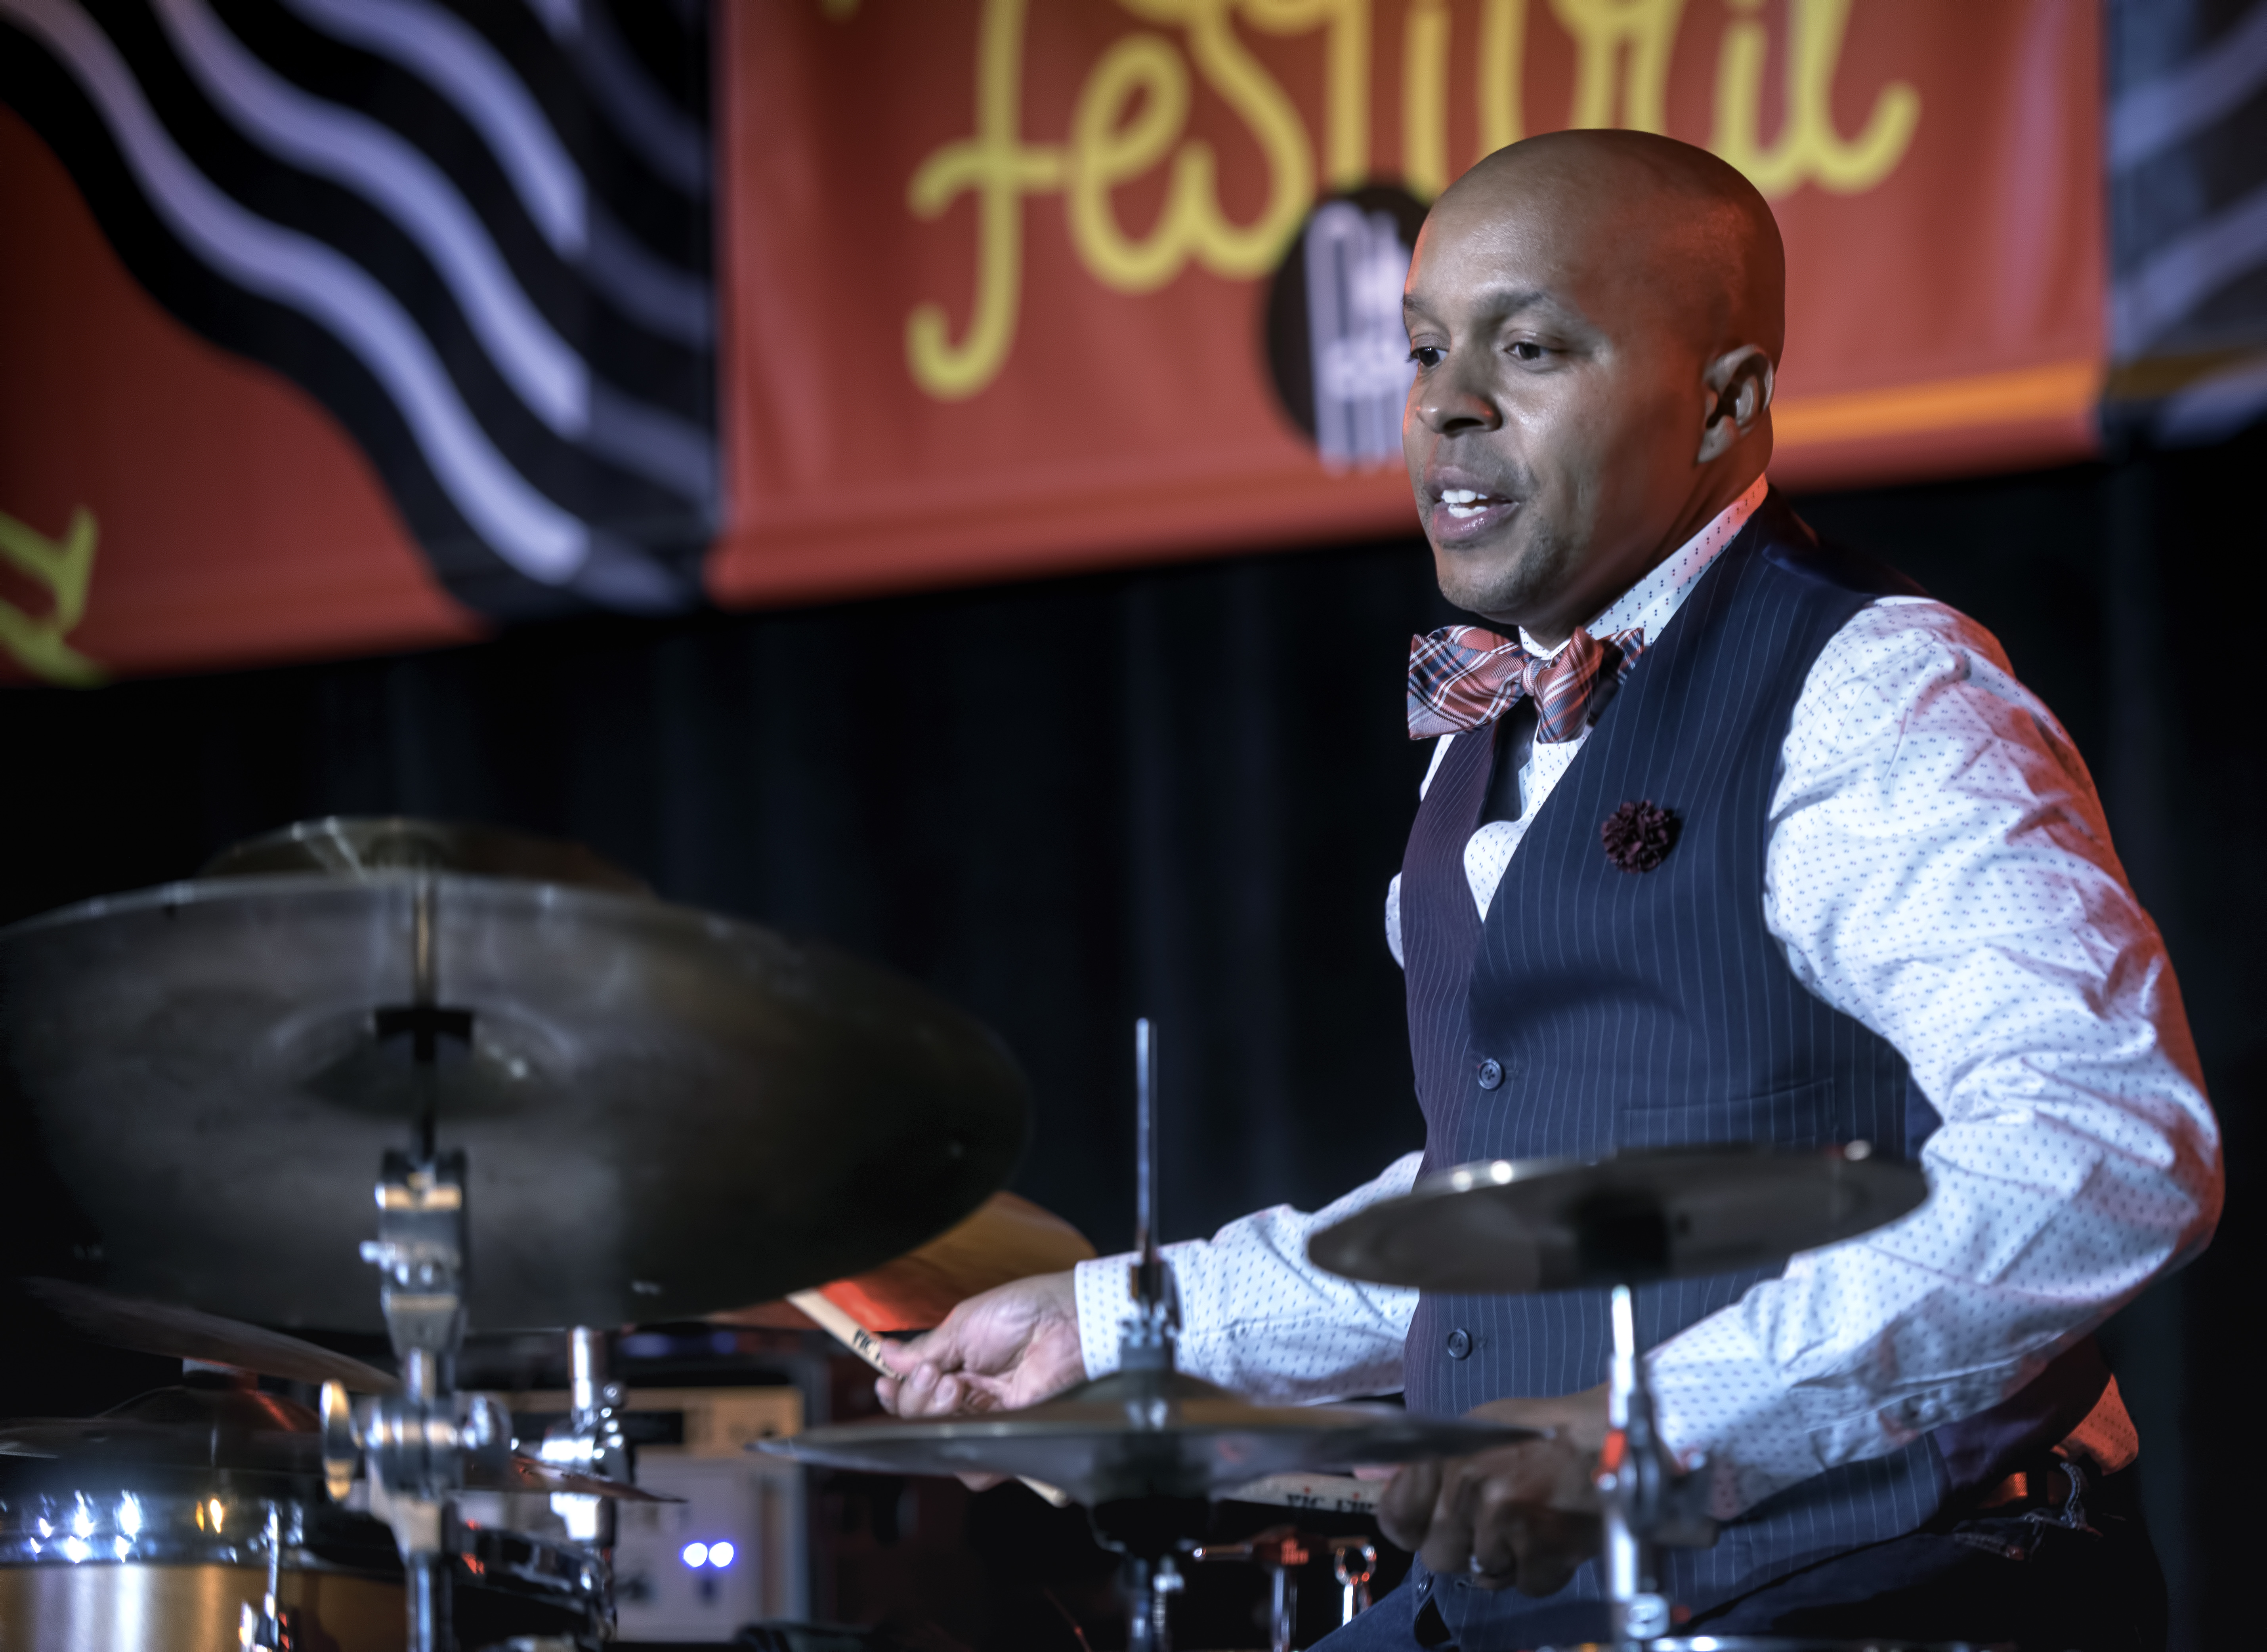 Marcus Baylor with the Baylor Project at the Monterey Jazz Festival 2018